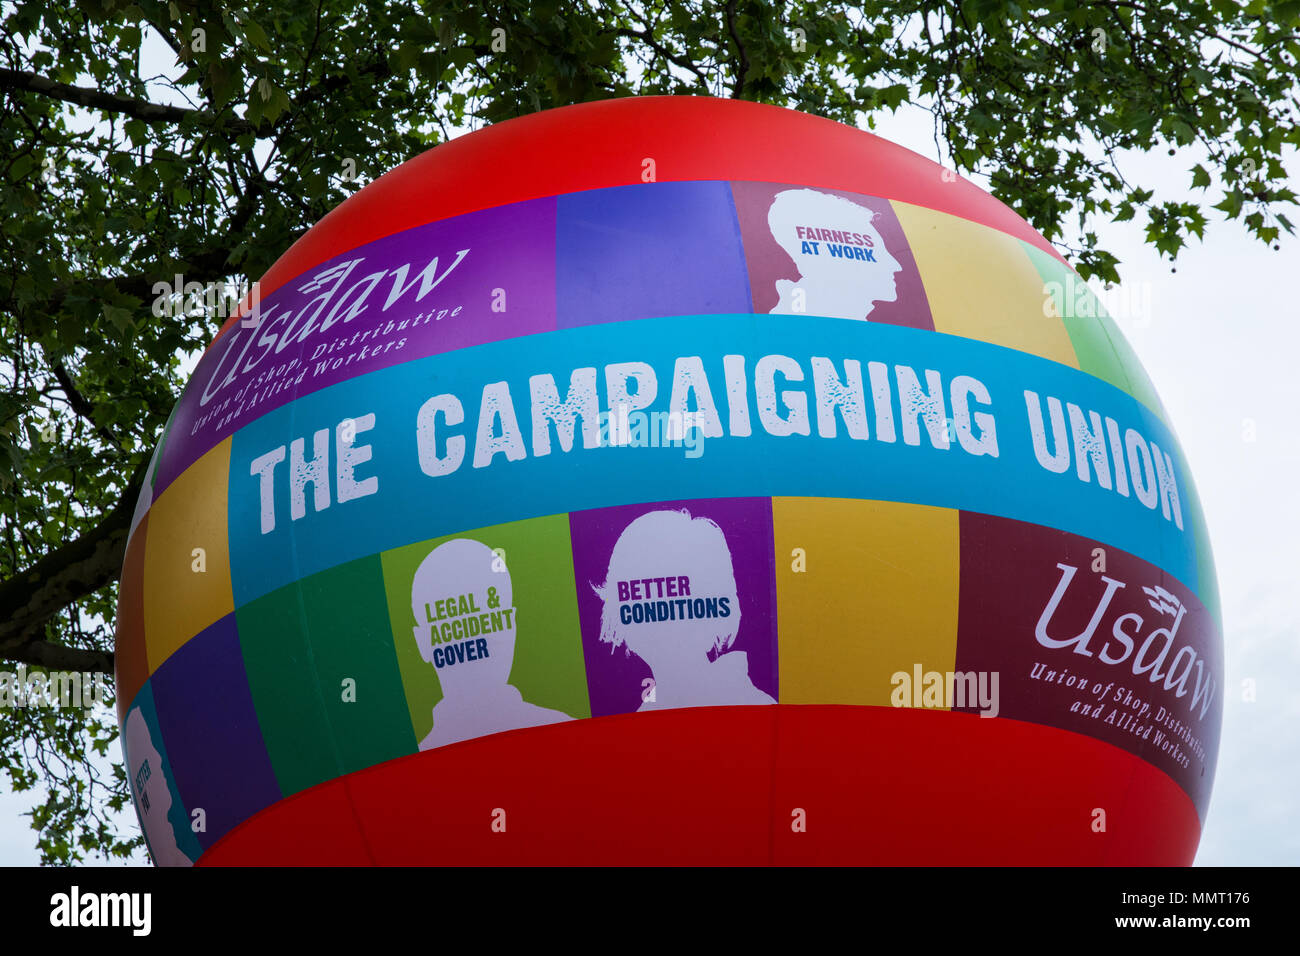 london-uk-12th-may-2018-tuc-march-and-ra